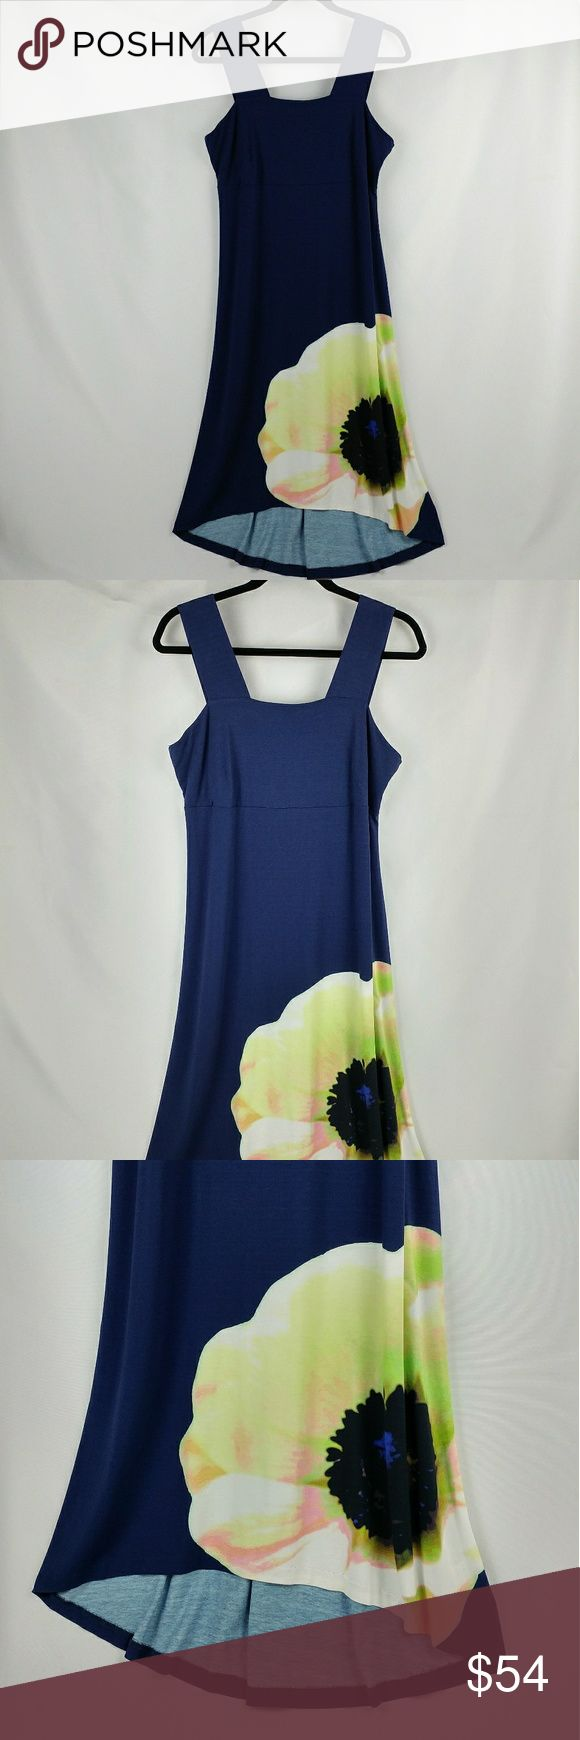 "NWT Cynthia Rowley High-low sleeveless dress Brand New With Tags Cynthia Rowley High-low sleeveless dress. Very comfortable stretchy quality material. Dark blue color with a big flower print on the bottom. 18"" armpit to armpit measuring laying flat across 42"" long in the front measuring from the sleeve 48"" long on the back side. Cynthia Rowley Dresses High Low"